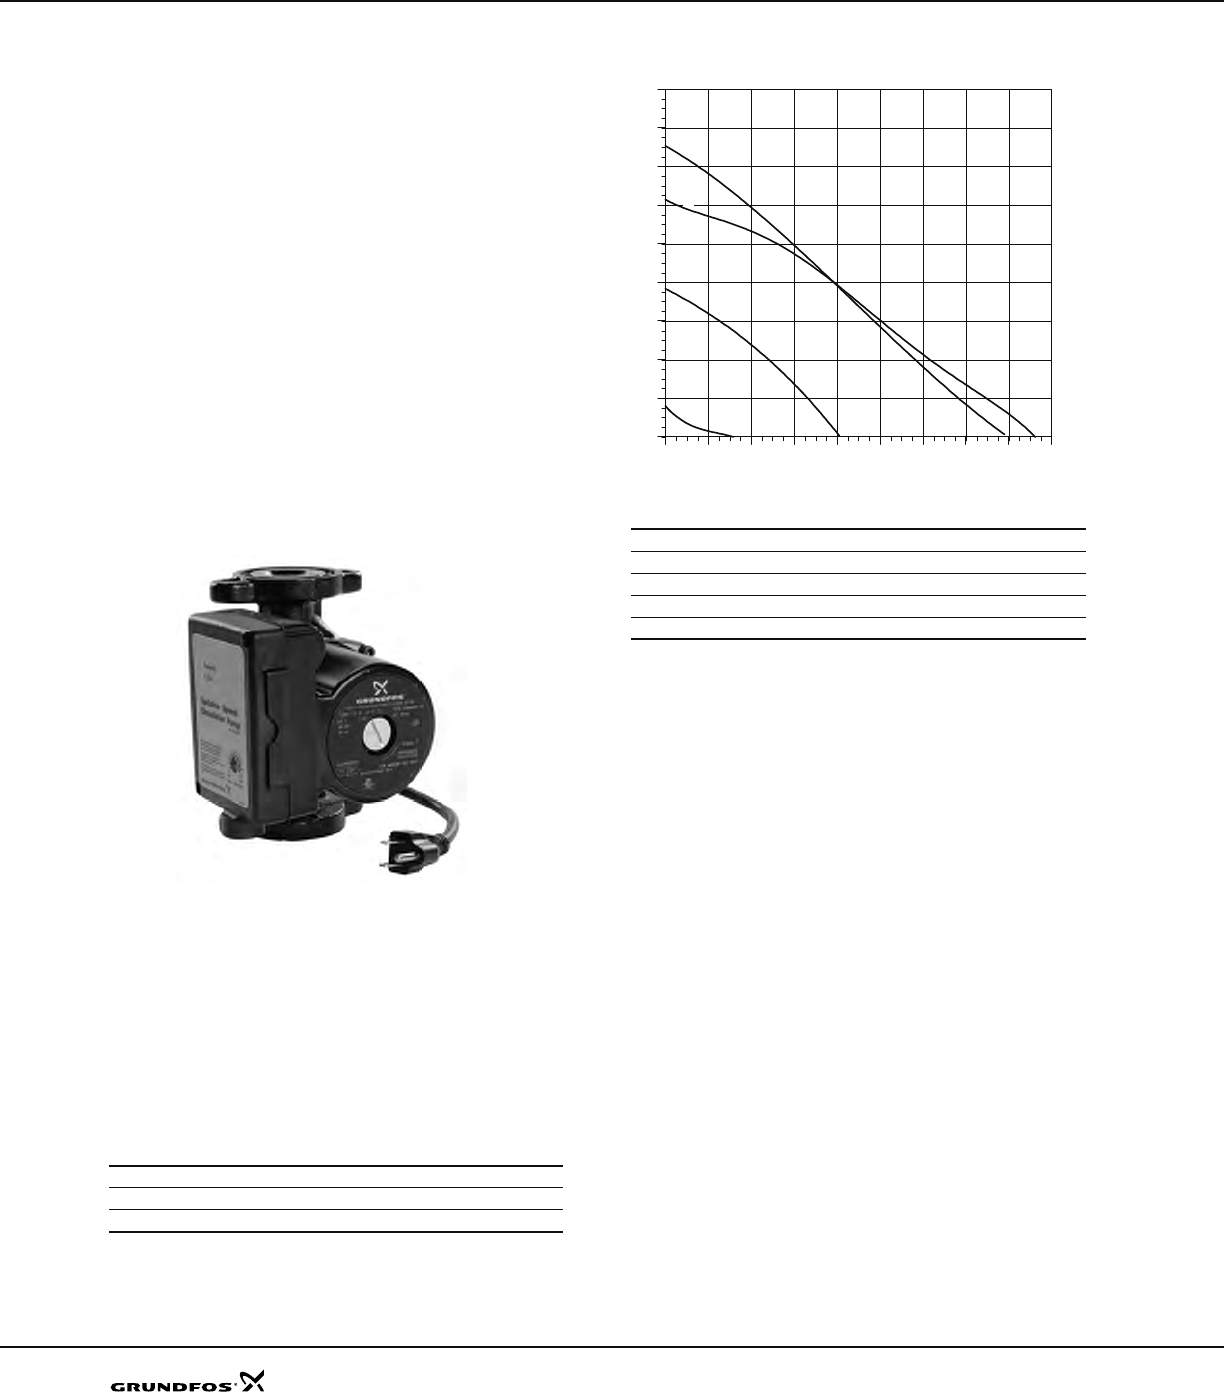 535061 4 Grundfos Up Series Brochure User Manual Pompa Celup Kp 150a Applications